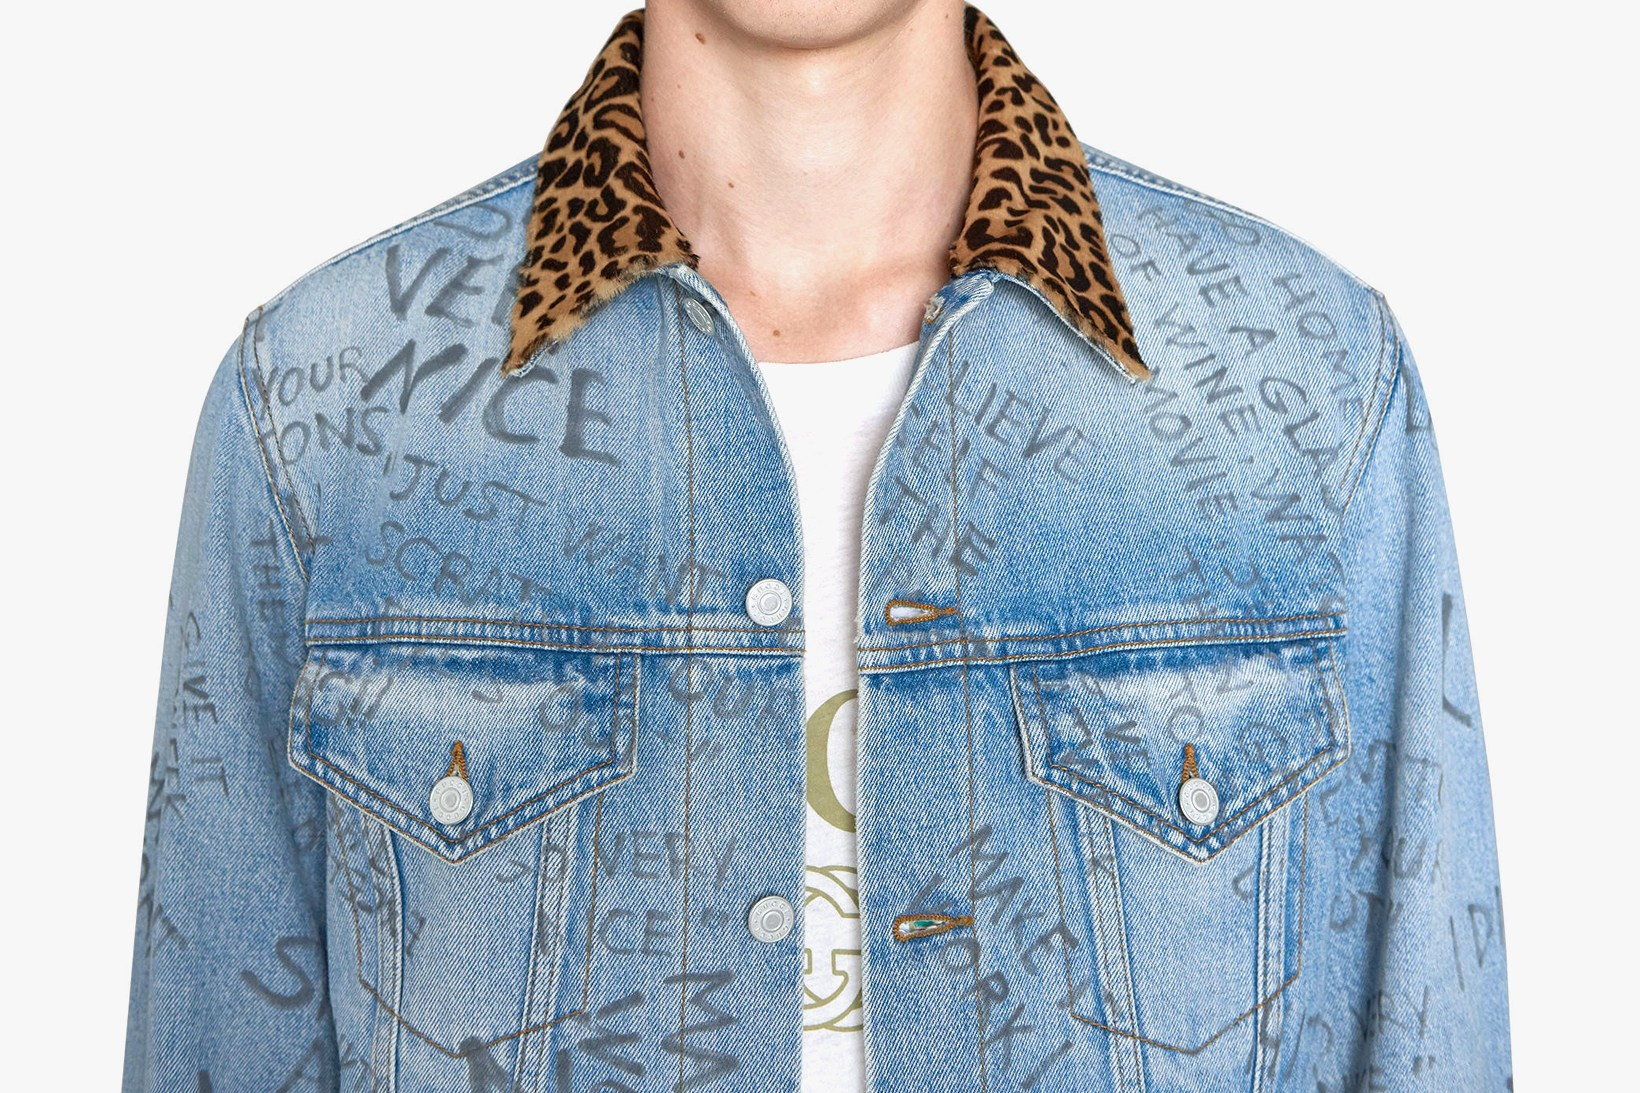 gucci-scribbled-writing-denim-jacket-3